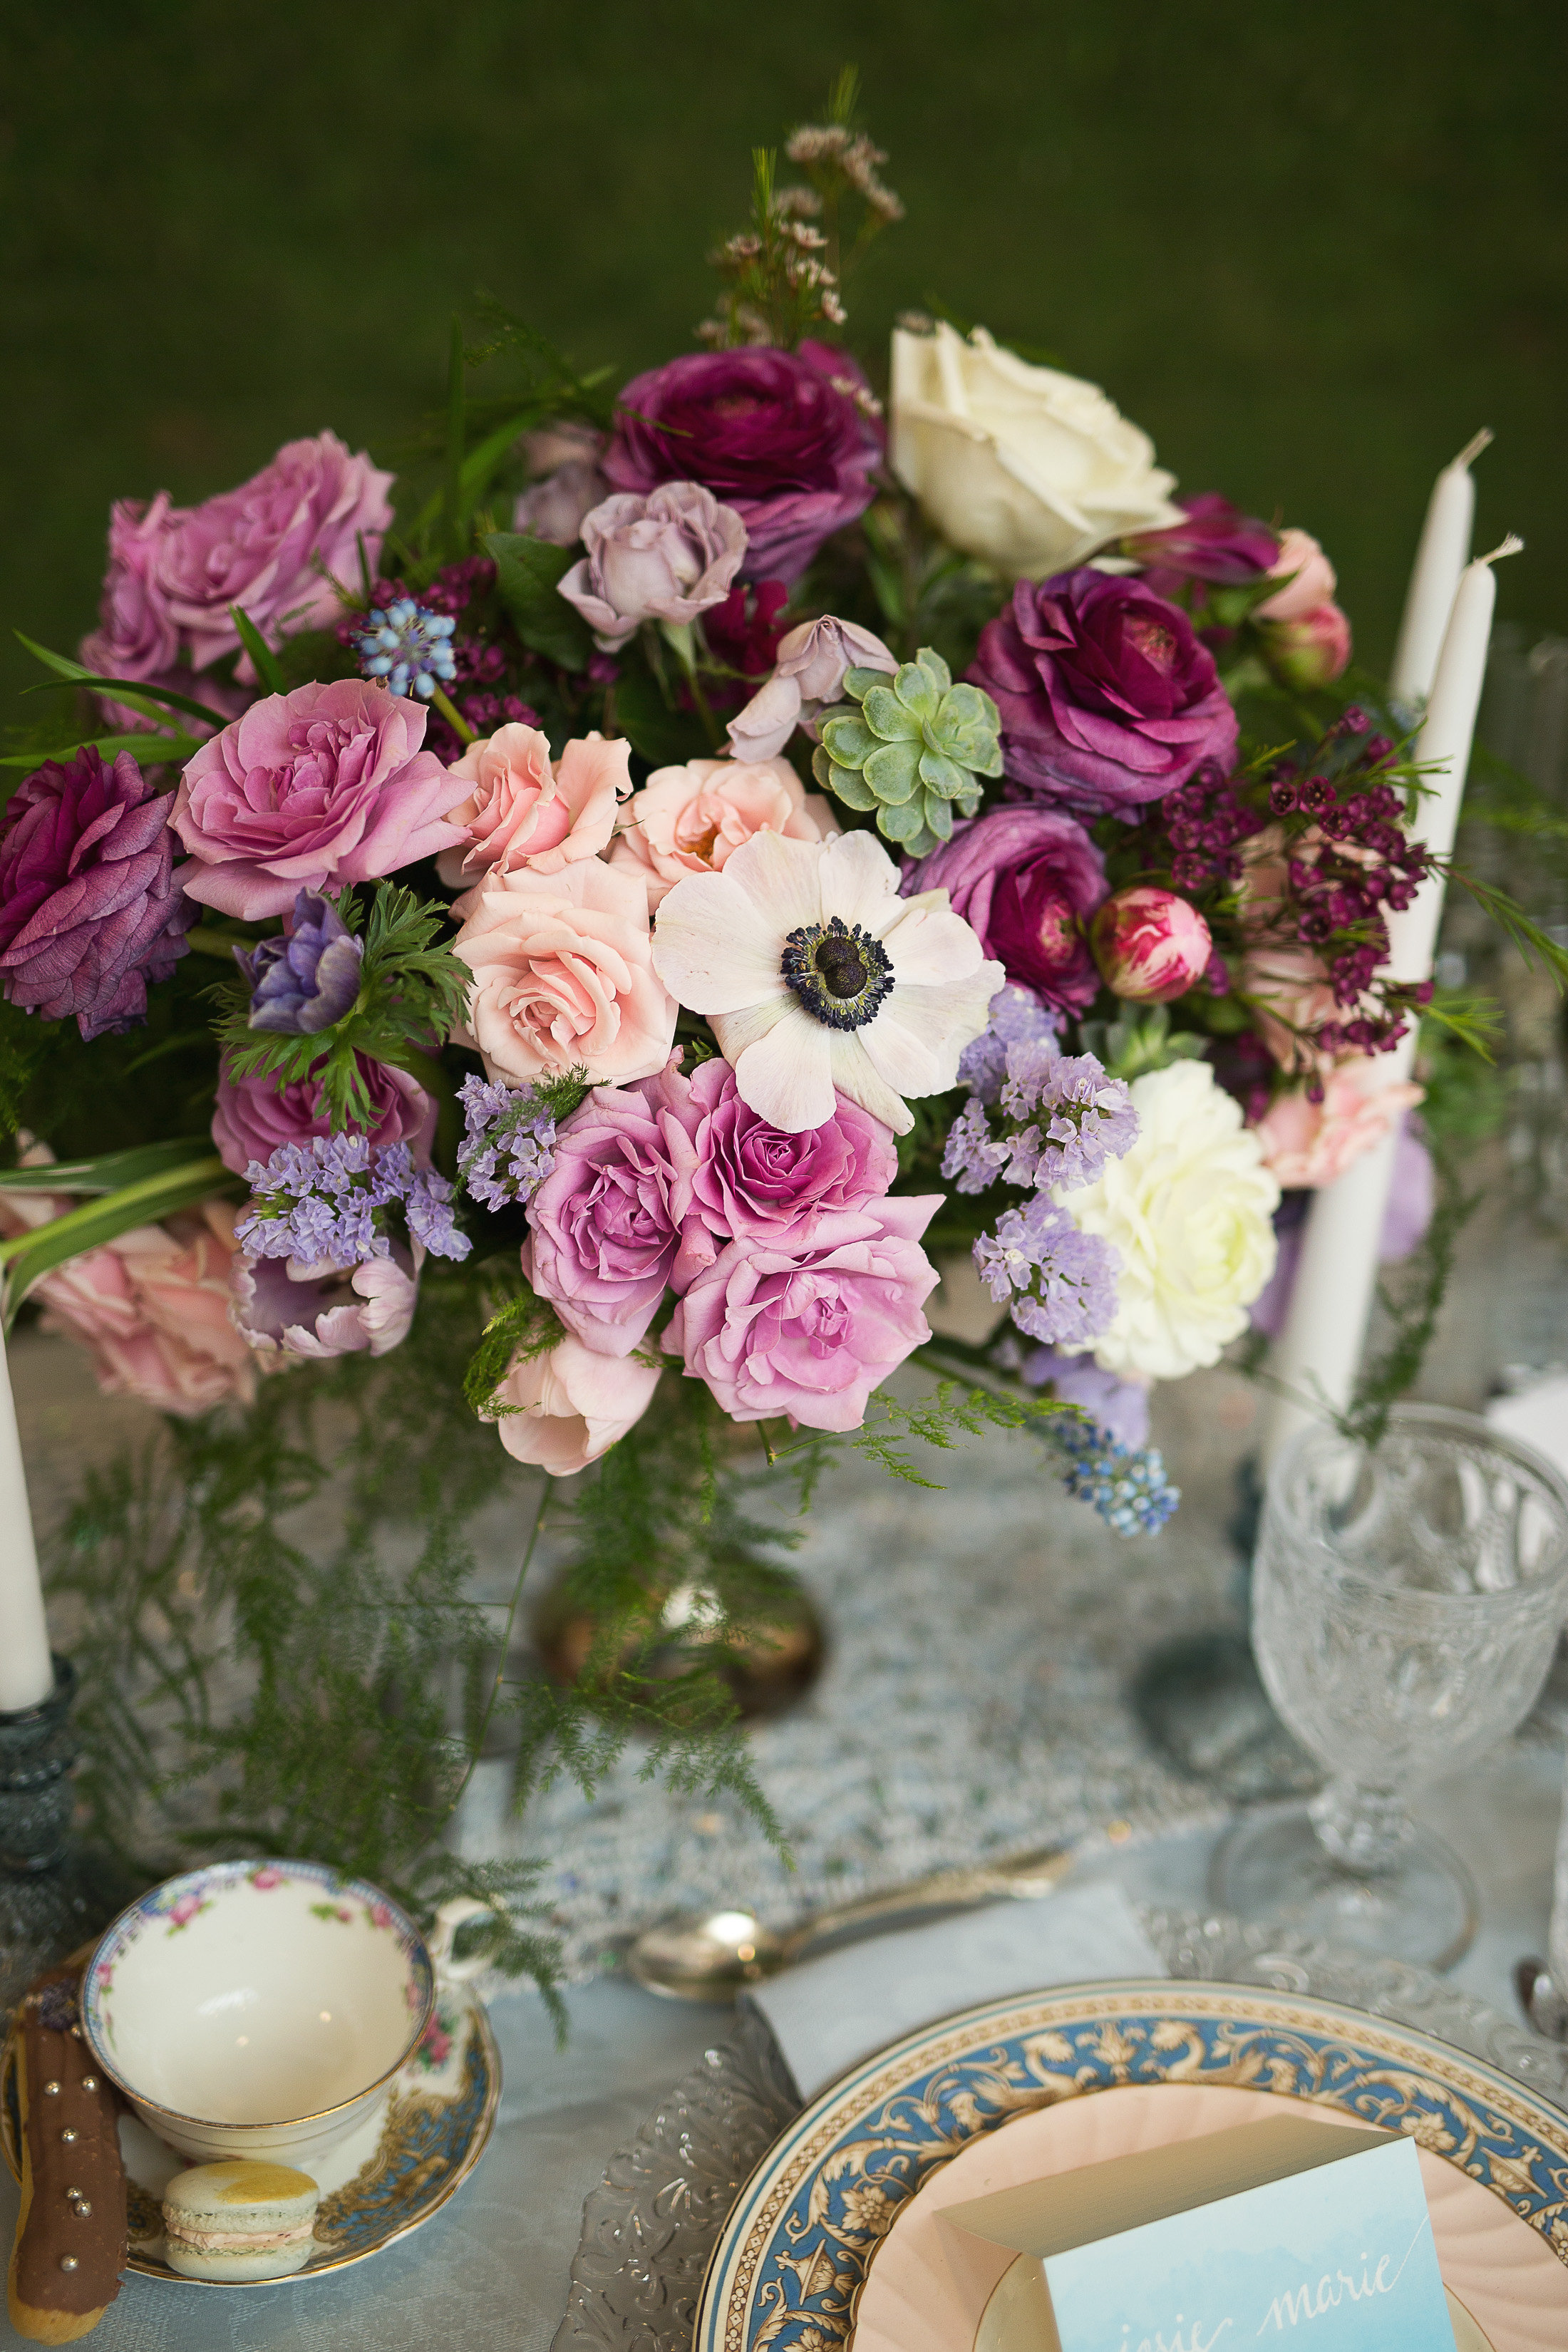 Phoebe Lo Events - Toronto Event Planner and Floral Designer 012.jpg